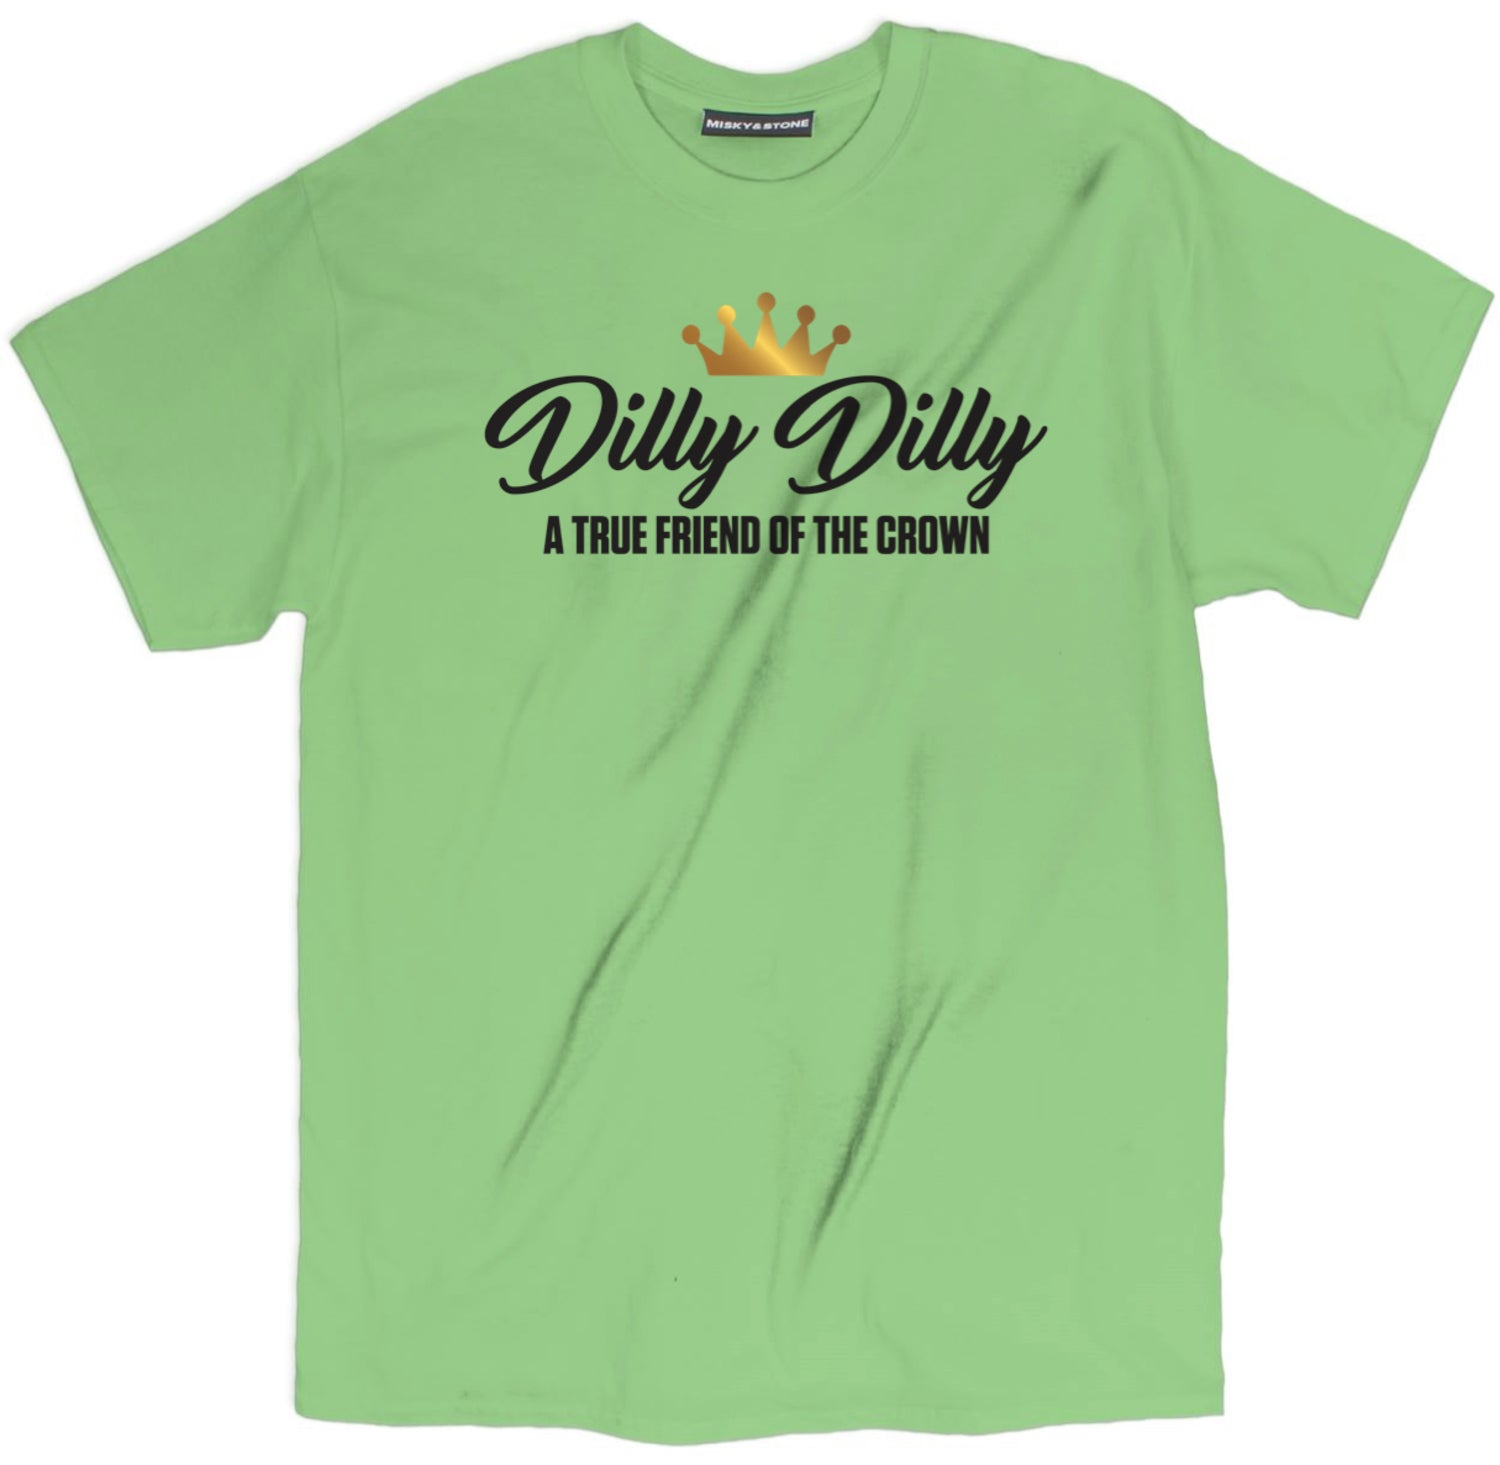 dilly dilly shirt, dilly dilly t shirt, beer shirts, funny beer shirts, beer tees, beer tee shirts, funny beer t shirts, drinking shirts, alcohol shirts, funny drinking shirts, brewery t shirts, craft beer shirts, craft beer t shirts, heineken t shirt, vintage beer shirts,